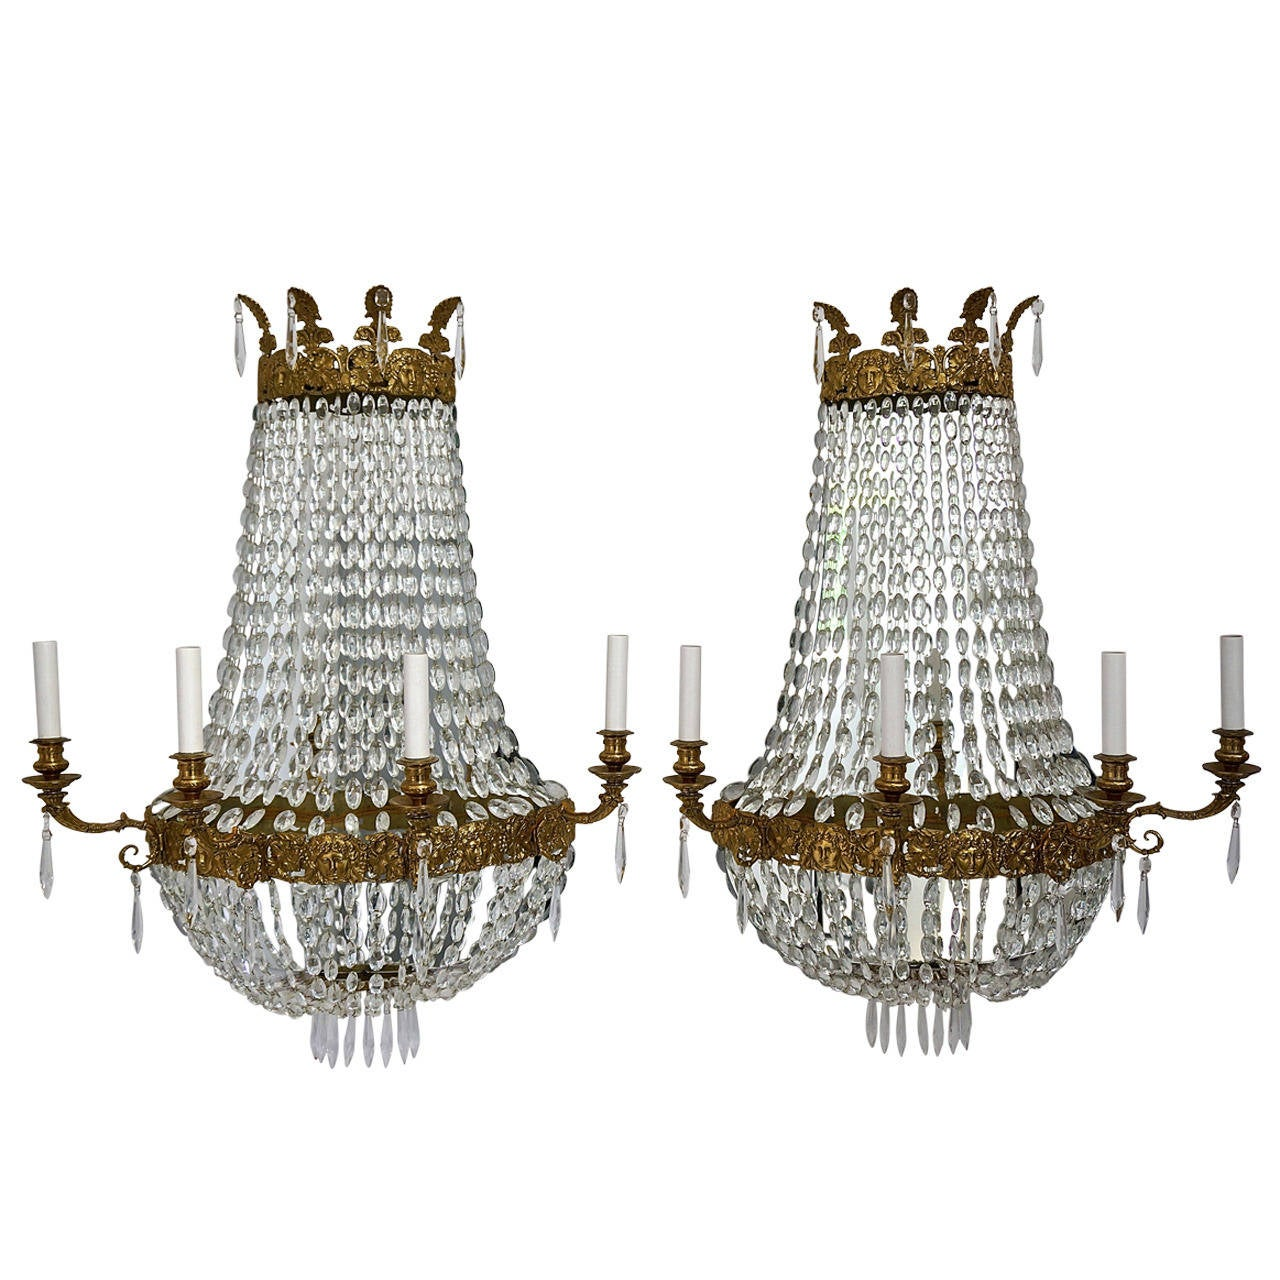 Pair of large french empire style four light wall sconces with pair of large french empire style four light wall sconces with mirrored backs for aloadofball Images